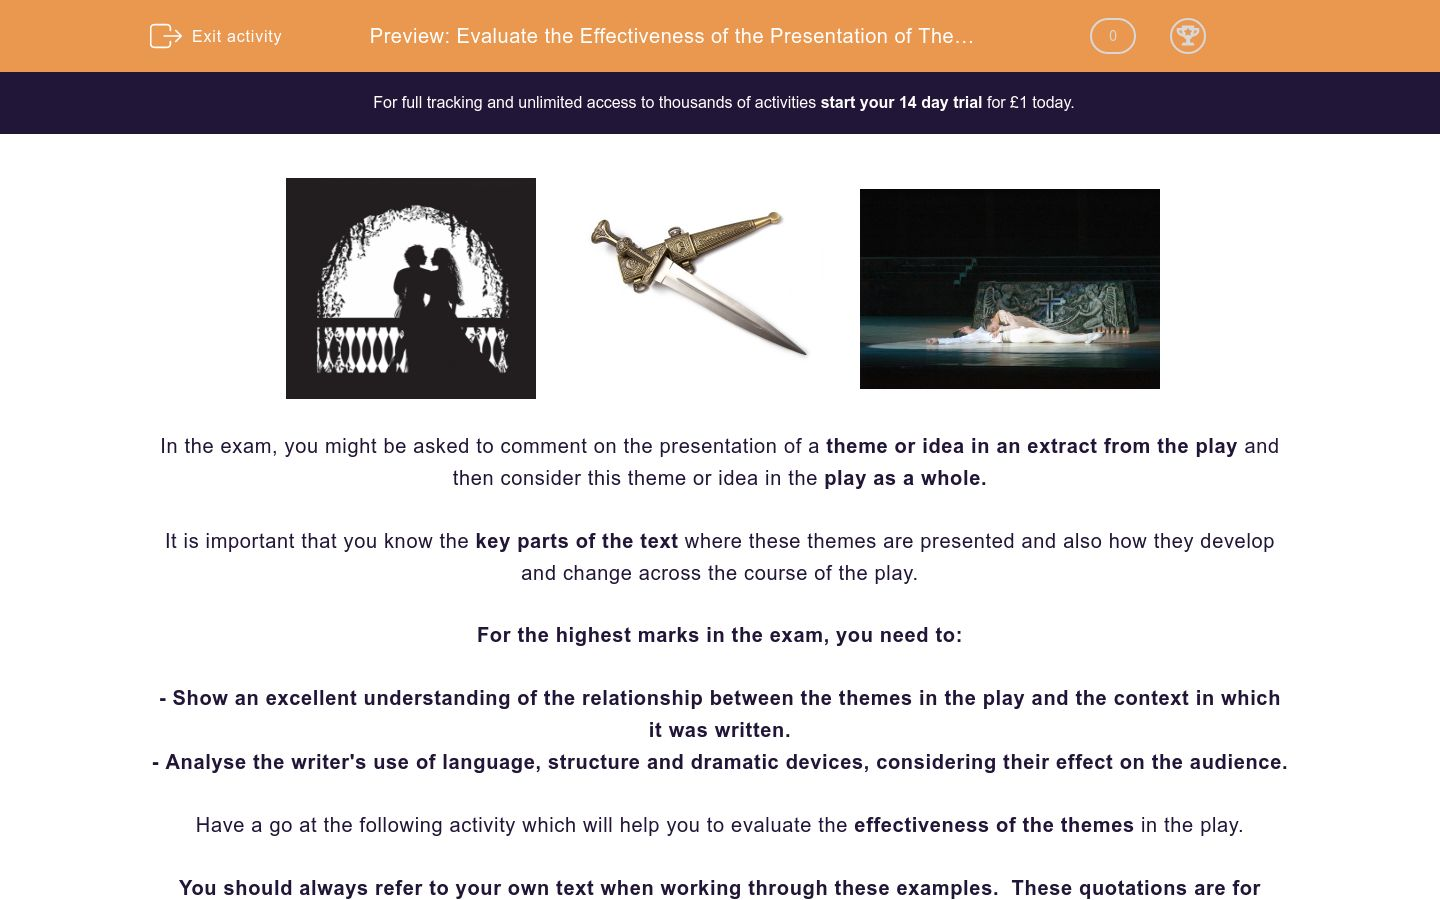 'Evaluate the Effectiveness of the Presentation of Themes in 'Romeo and Juliet'' worksheet